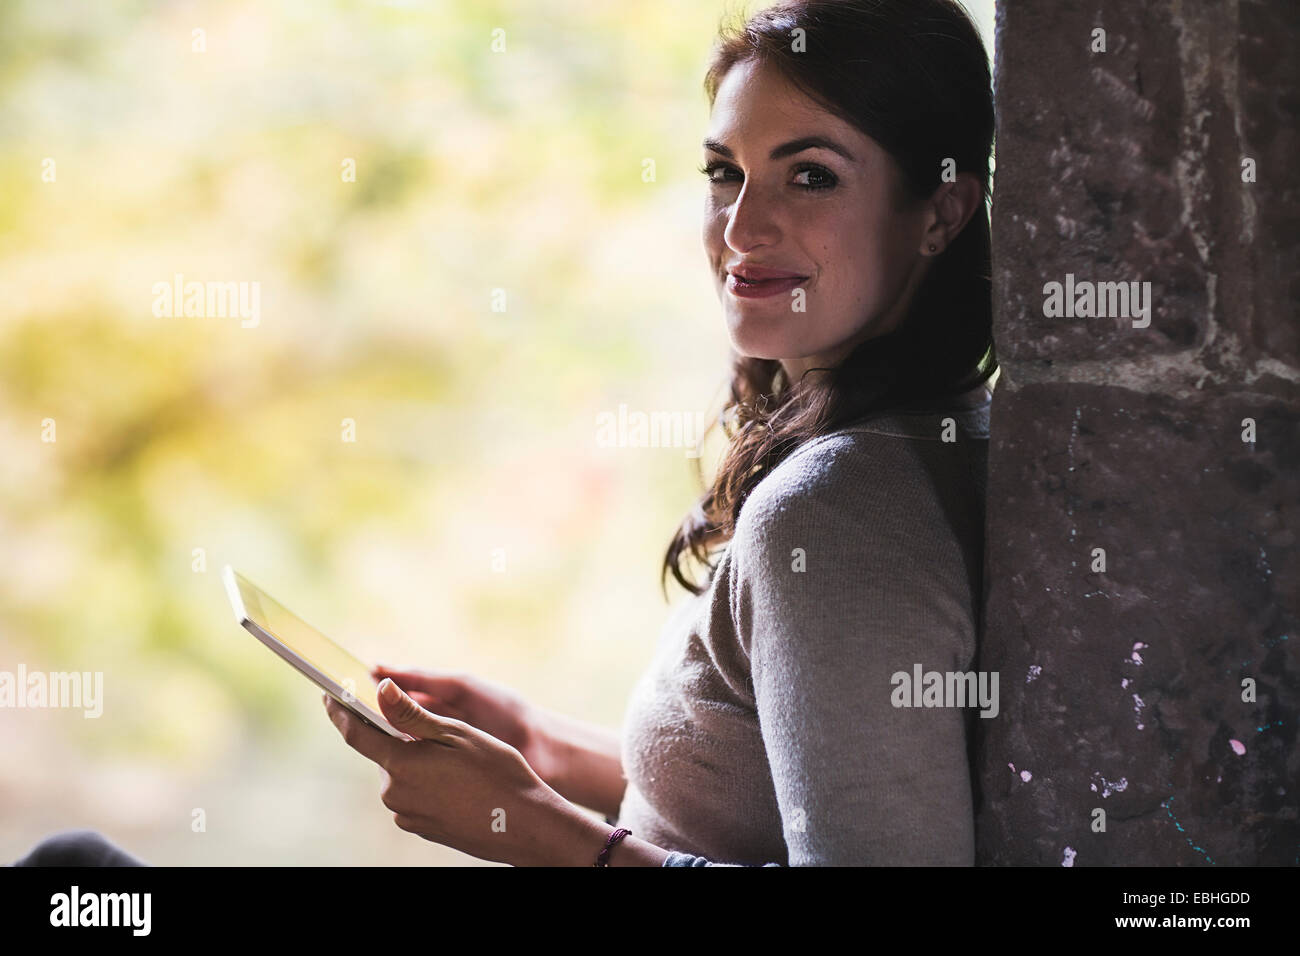 Portrait of young woman leaning against wall using digital tablet - Stock Image